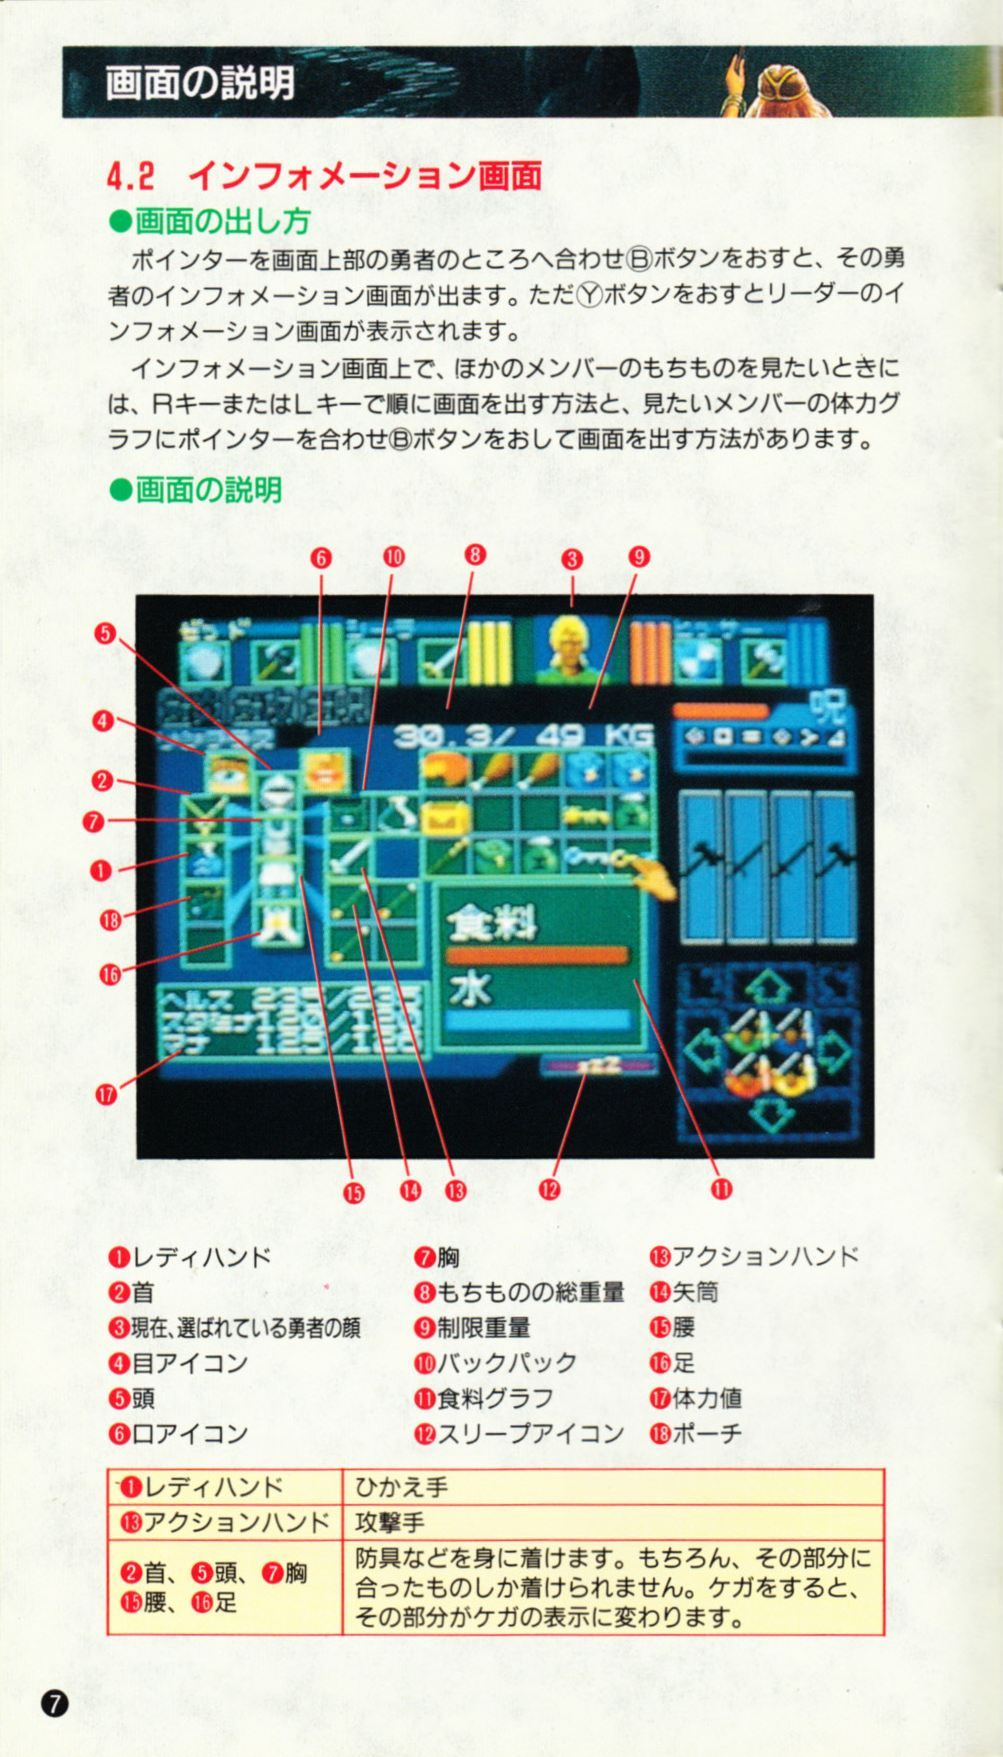 Game - Dungeon Master - JP - Super Famicom - Manual - Page 010 - Scan